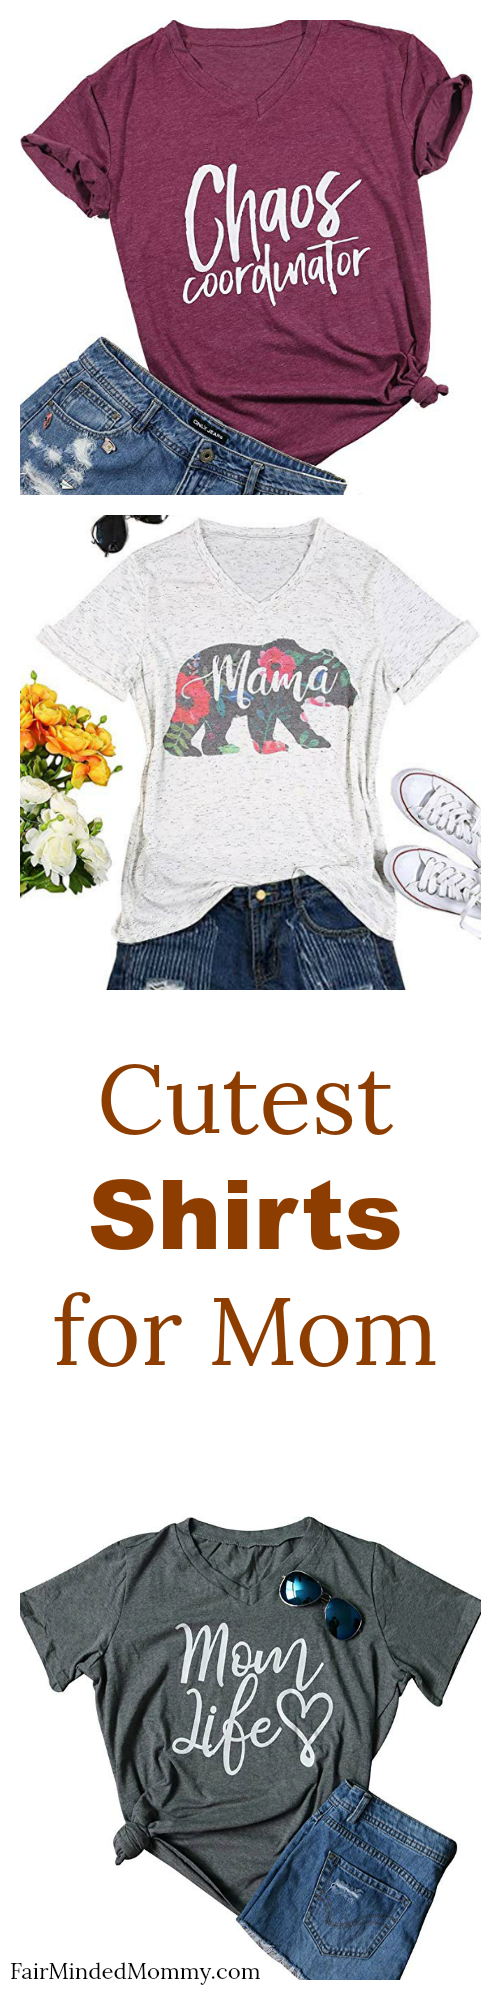 Cutest Shirts for Mom